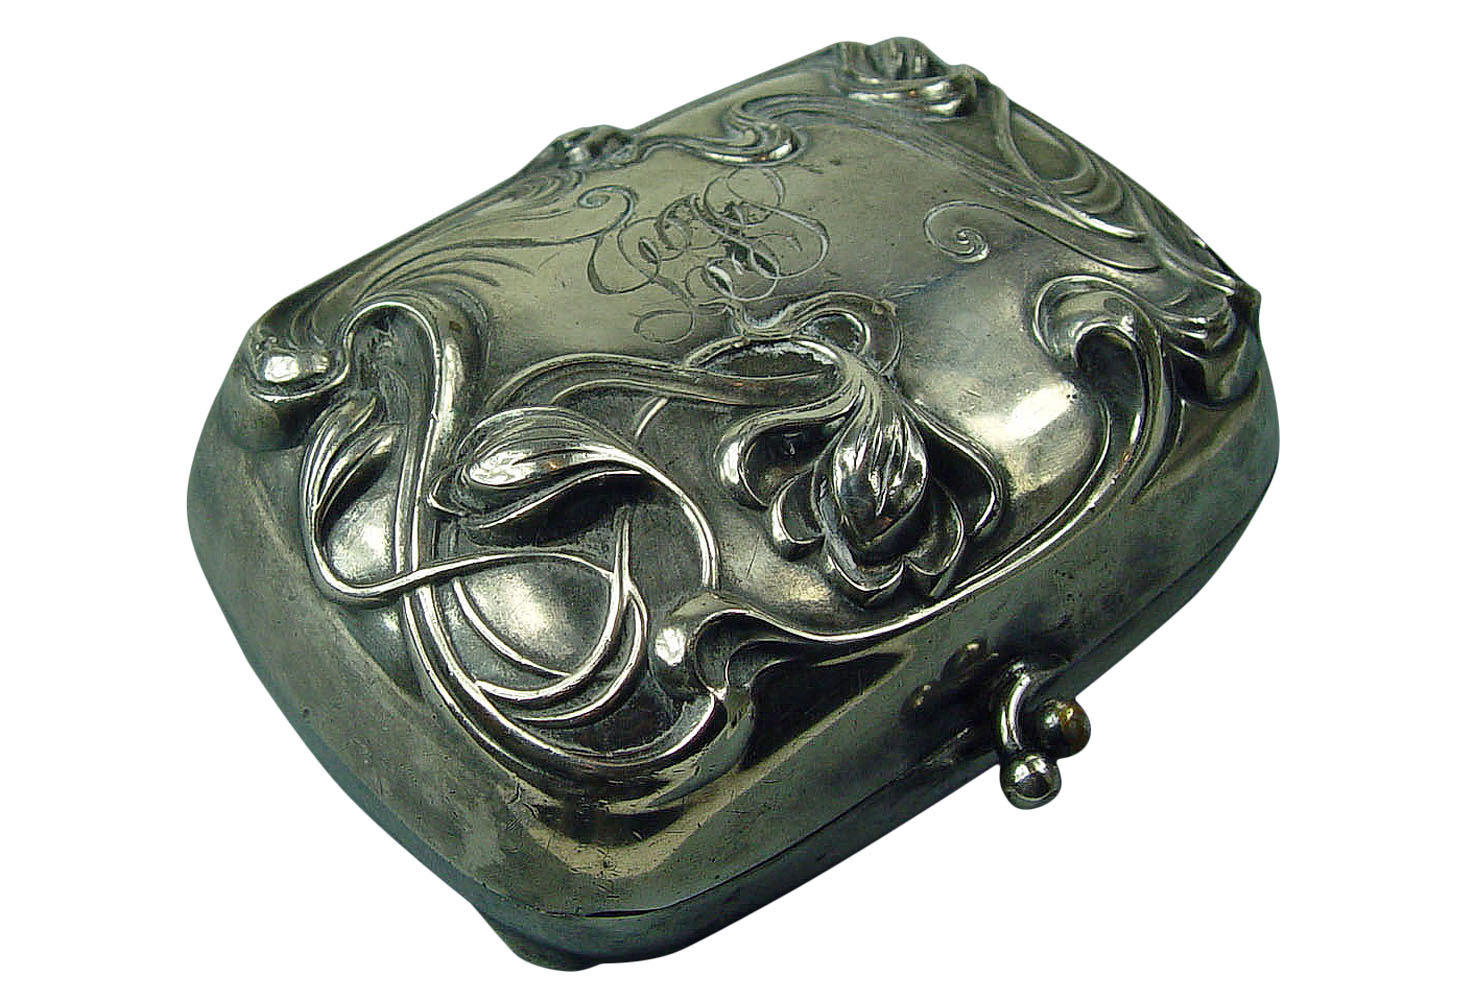 Antique Silver Plate Art Nouveau Dresser Box Omero Home